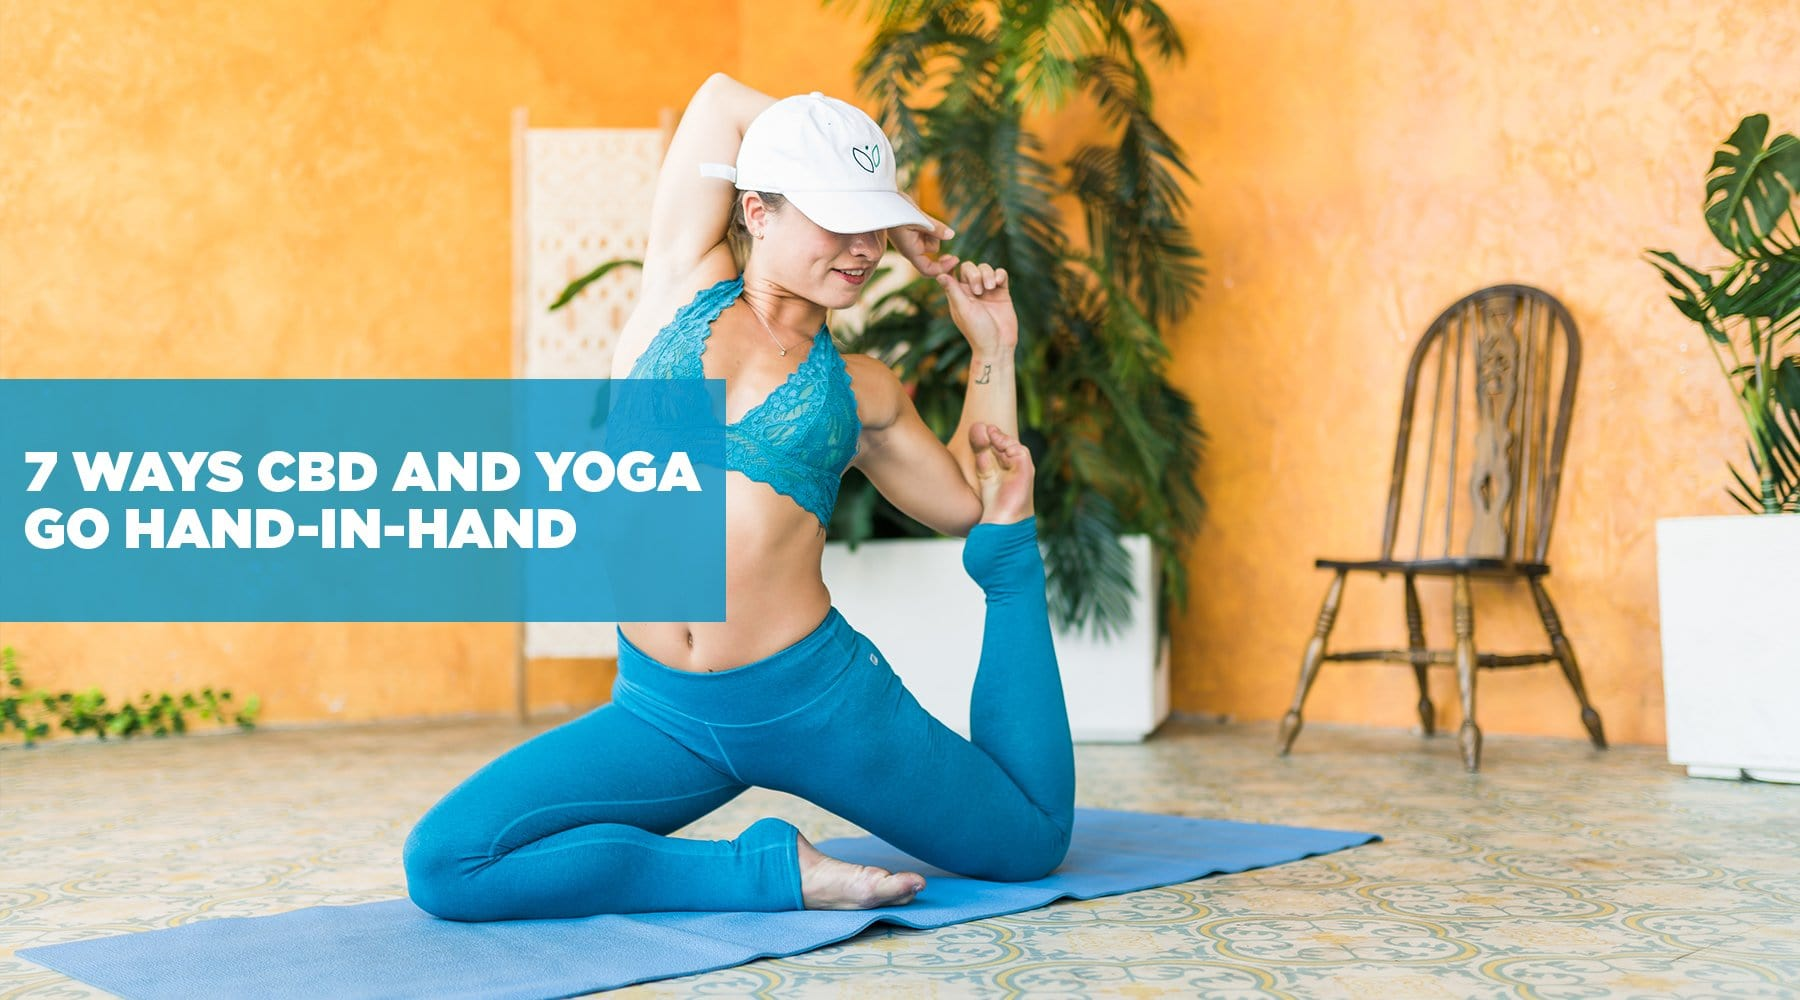 7 Ways CBD and Yoga Go Hand In Hand